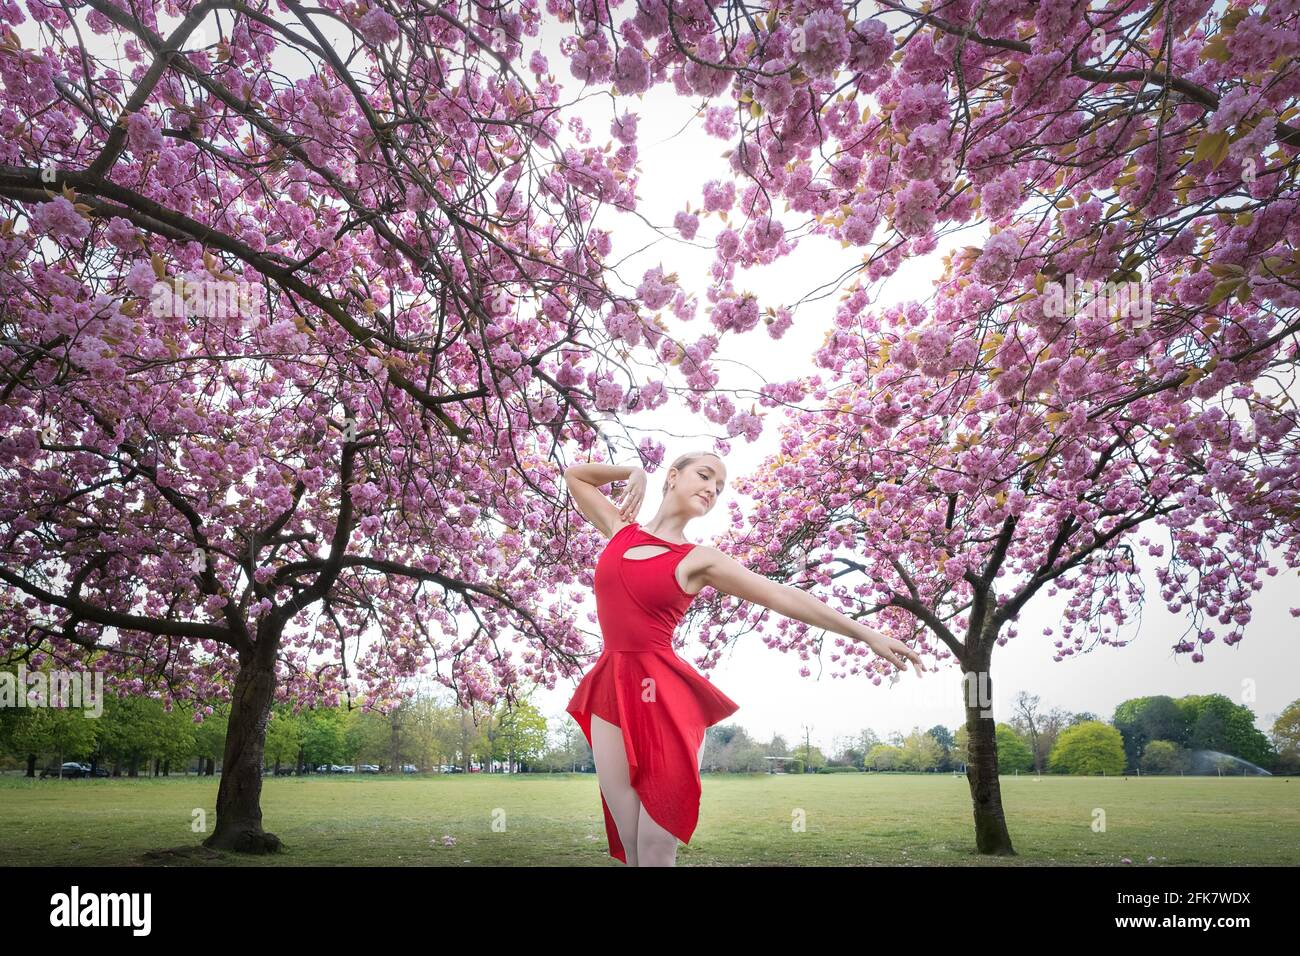 London, UK. 29th April 2021. International Dance Day: Aria Tilah, a student with the Royal Academy of Dance, performs among the striking cherry blossom trees in Greenwich Park on International Dance Day. First celebrated in 1982, International Dance Day has taken place every year since in anniversary celebration of the birth of Jean-Georges Noverre (1727-1810), considered the creator of modern ballet. Credit: Guy Corbishley/Alamy Live News Stock Photo